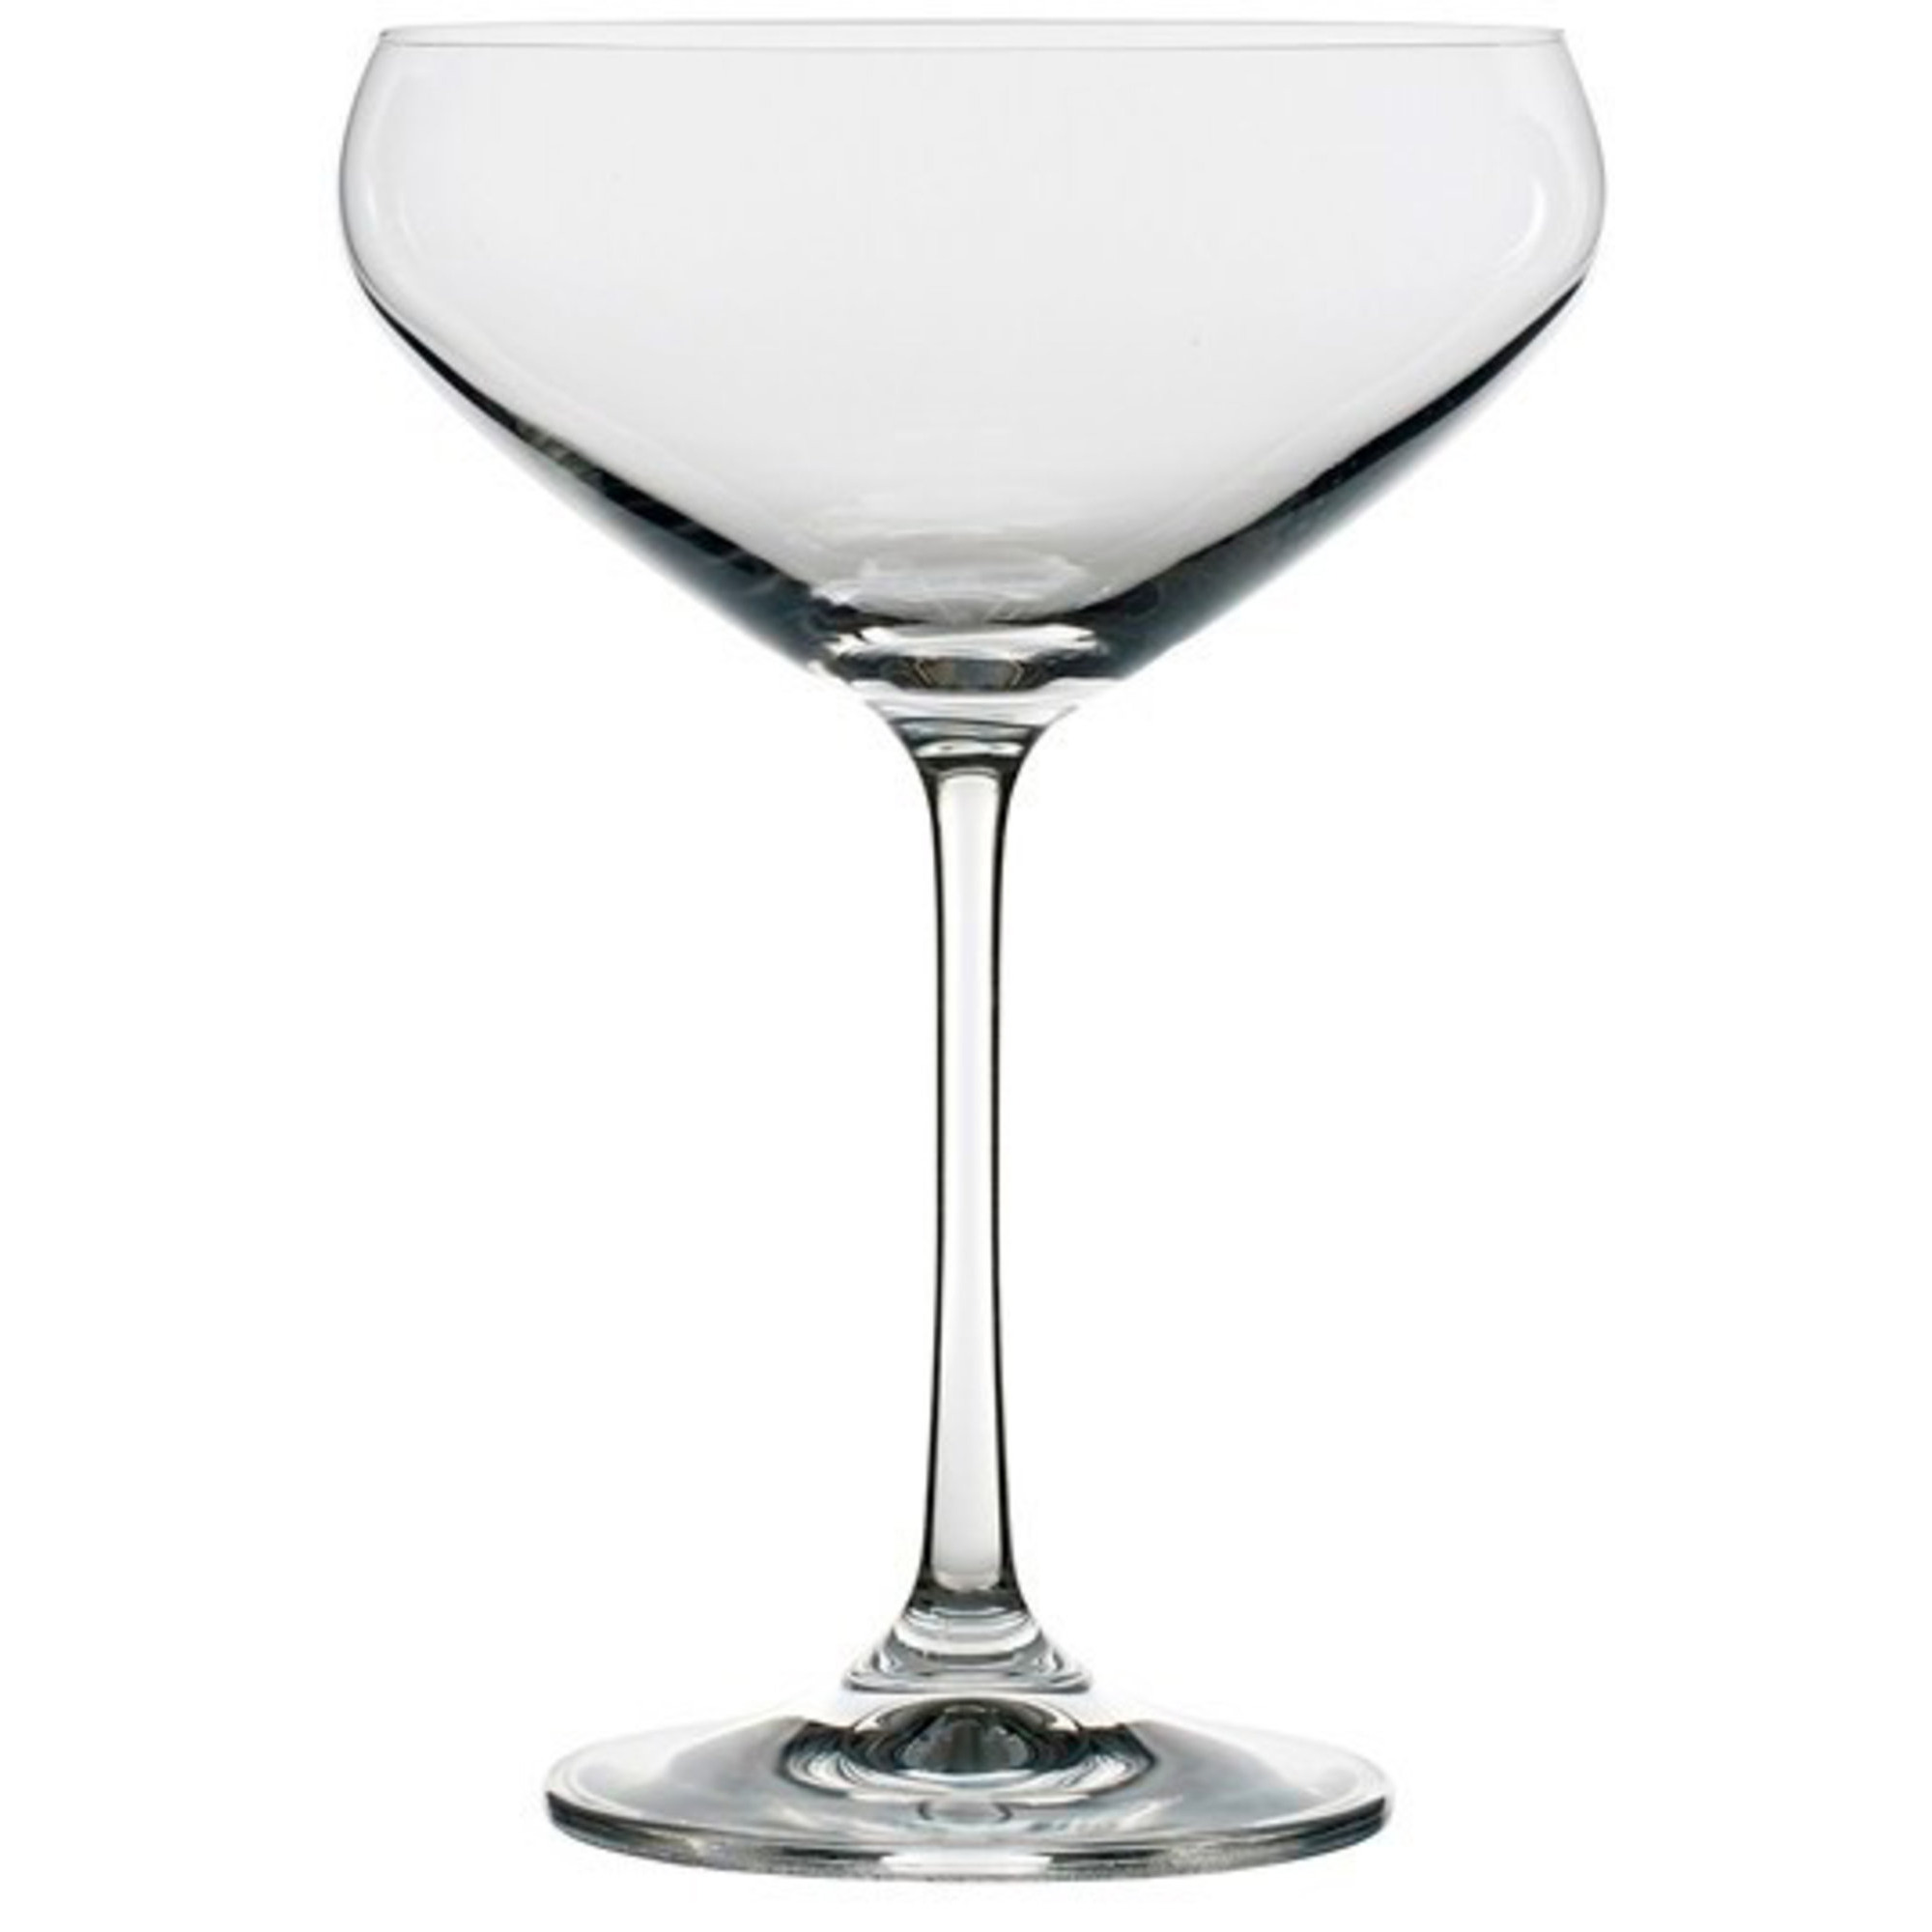 Lyngby Glas Juvel Champagneglas Party 34 cl 4 st